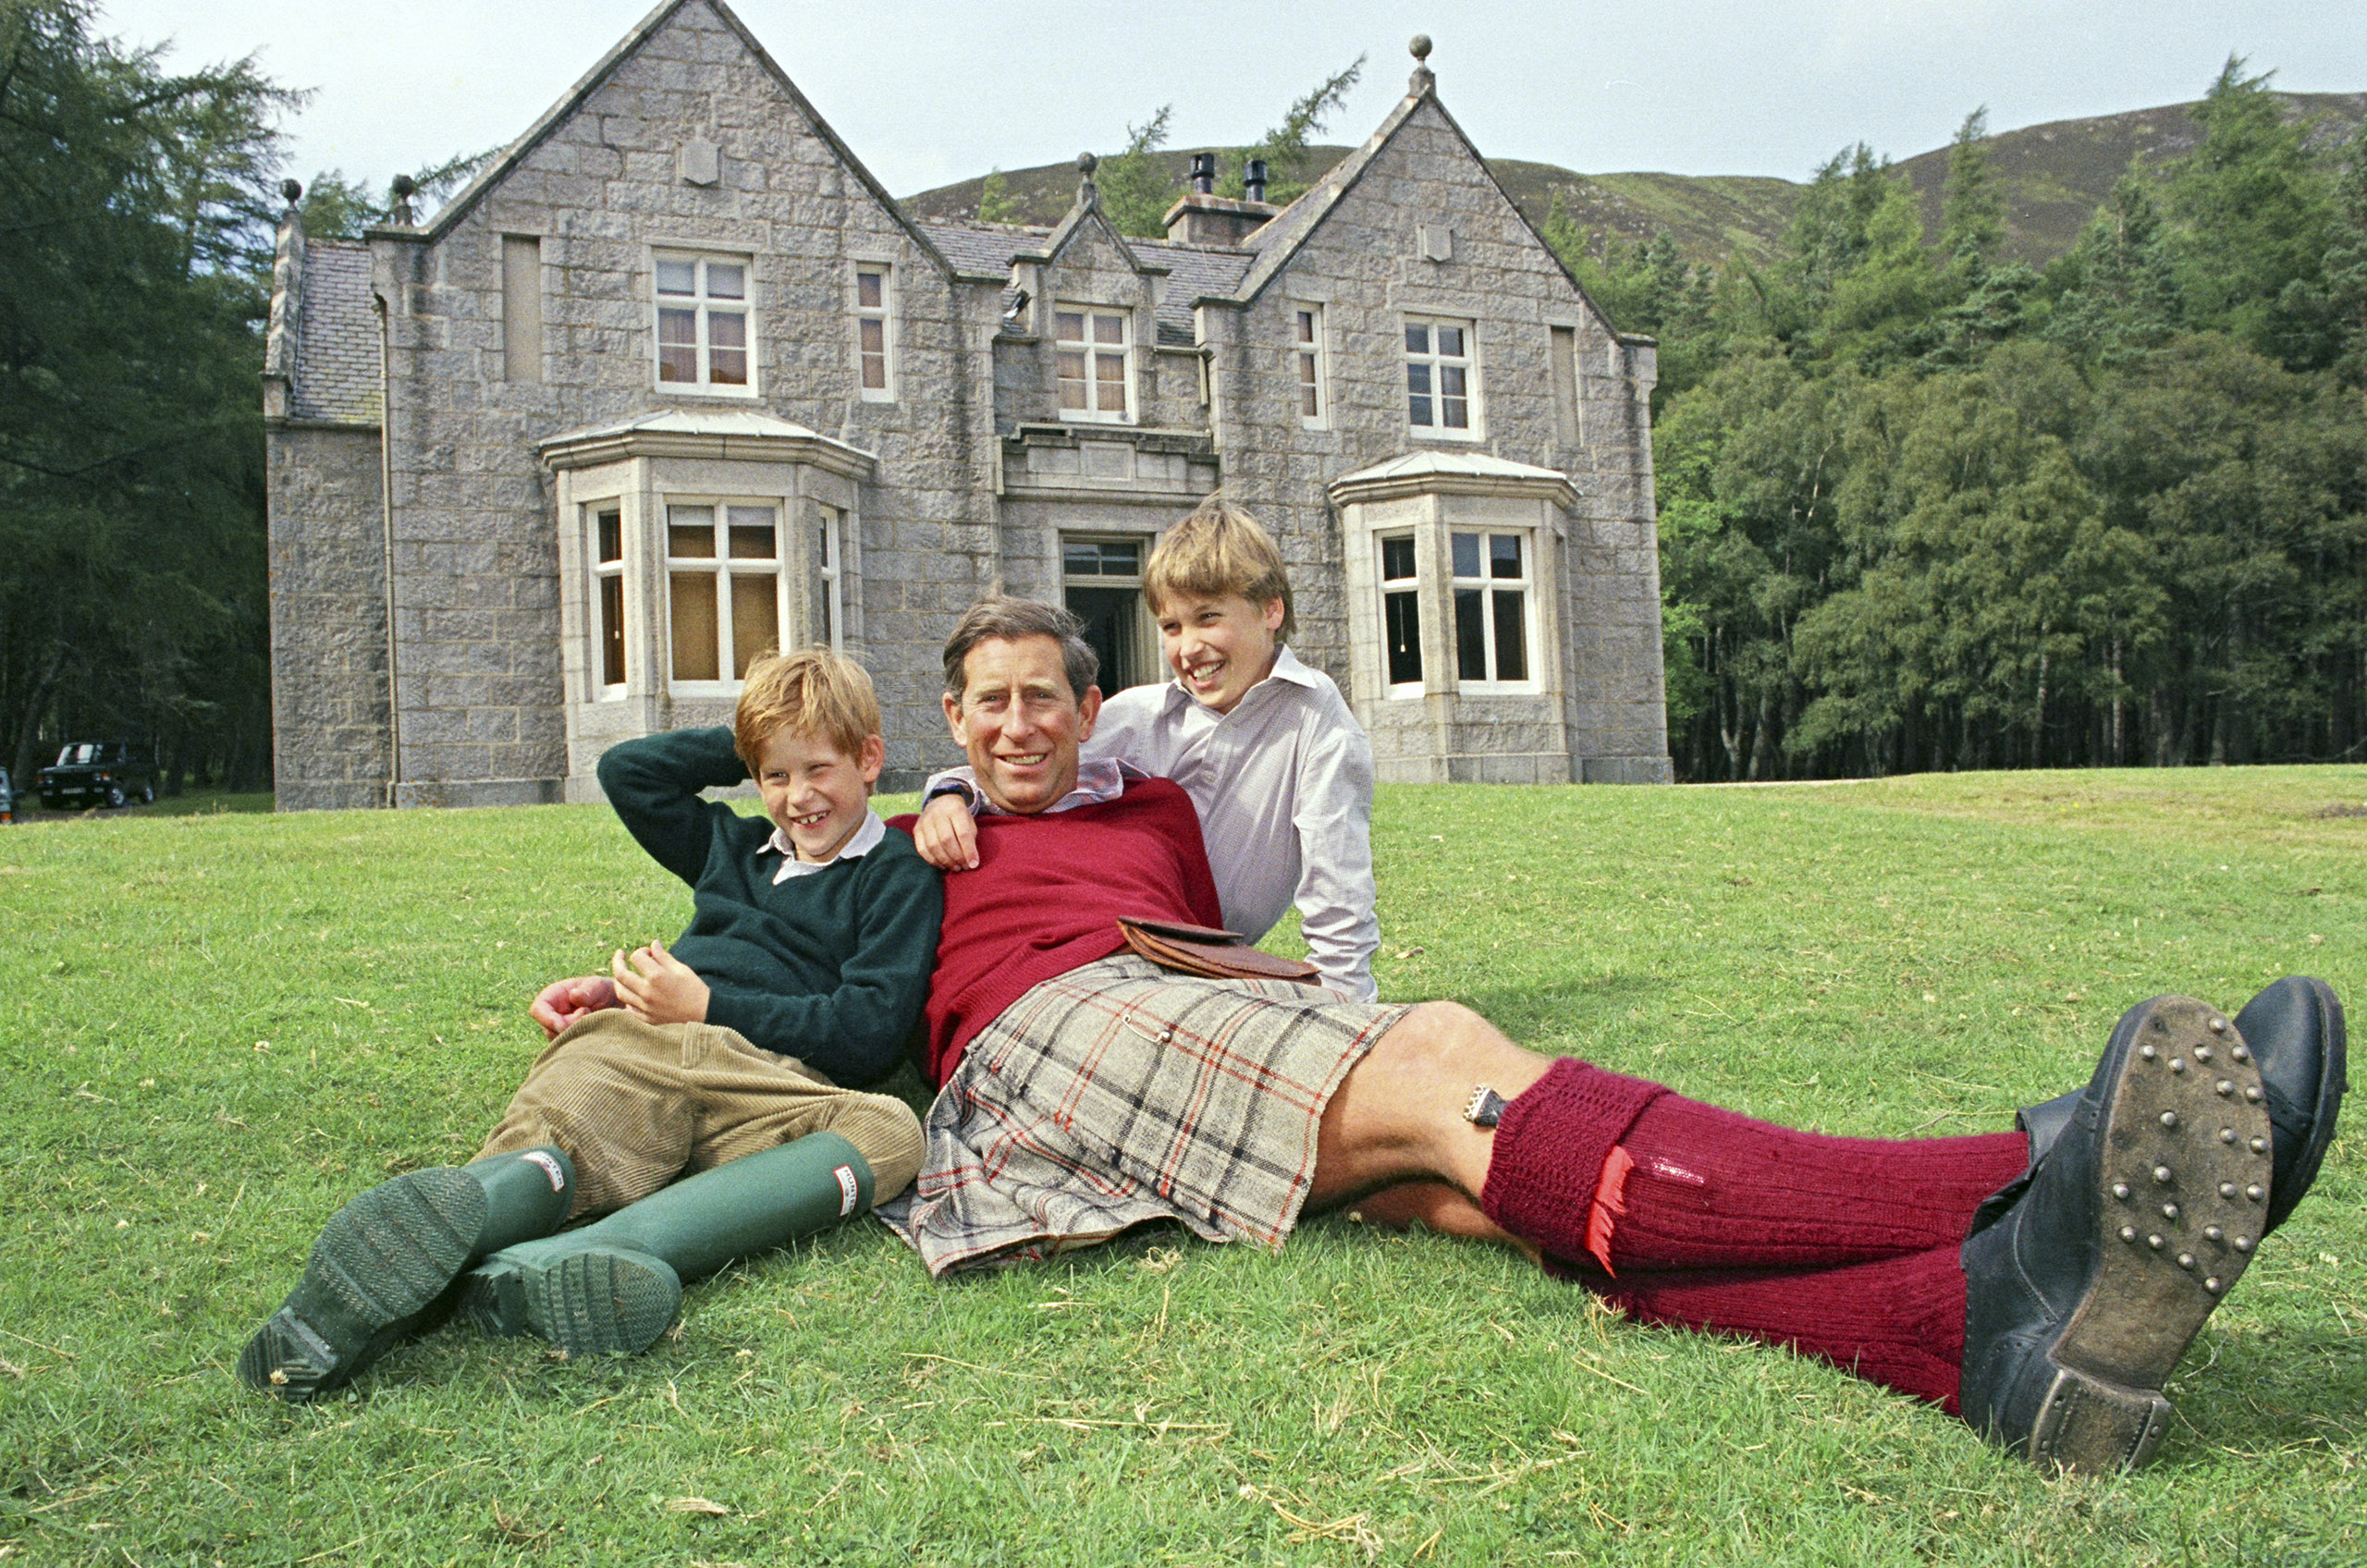 Charles and his sons relax on the lawn of Glas-allt Shiel, a royal lodge by the shores of a lake on the Balmoral estate in Scotland, in 1993.